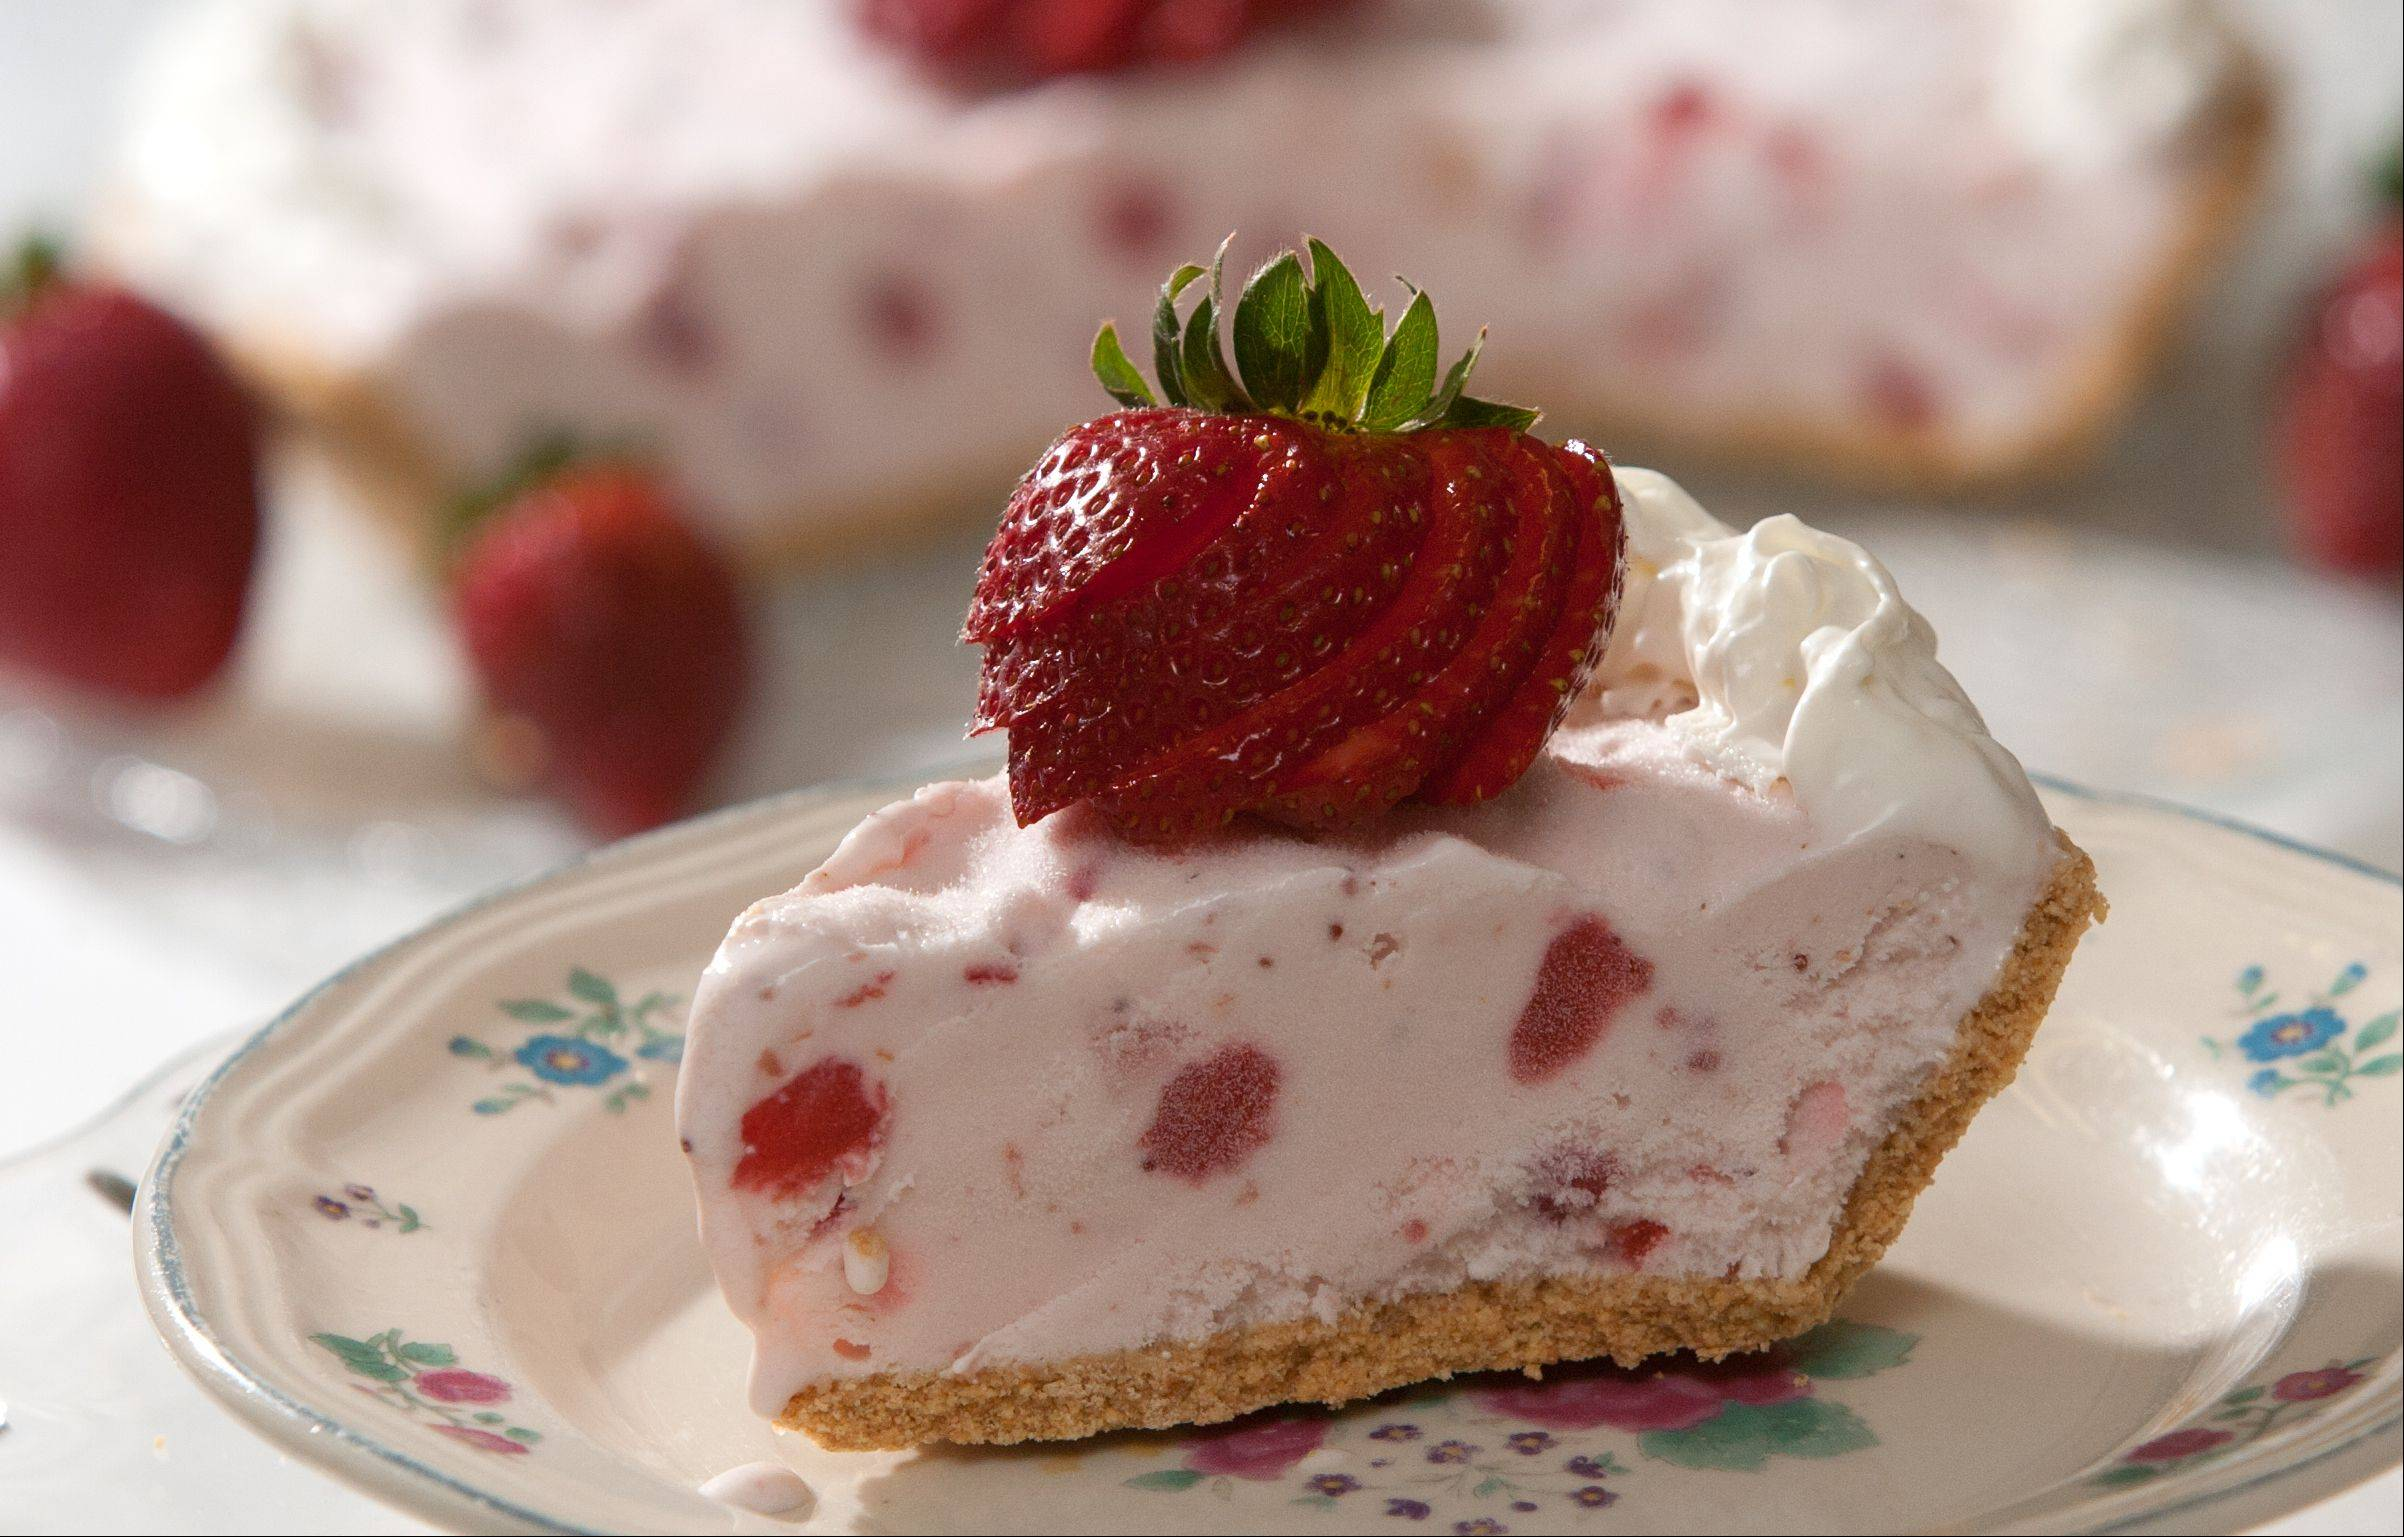 Baking secrets: Greek yogurt, ice cream combine for cool, summery pie